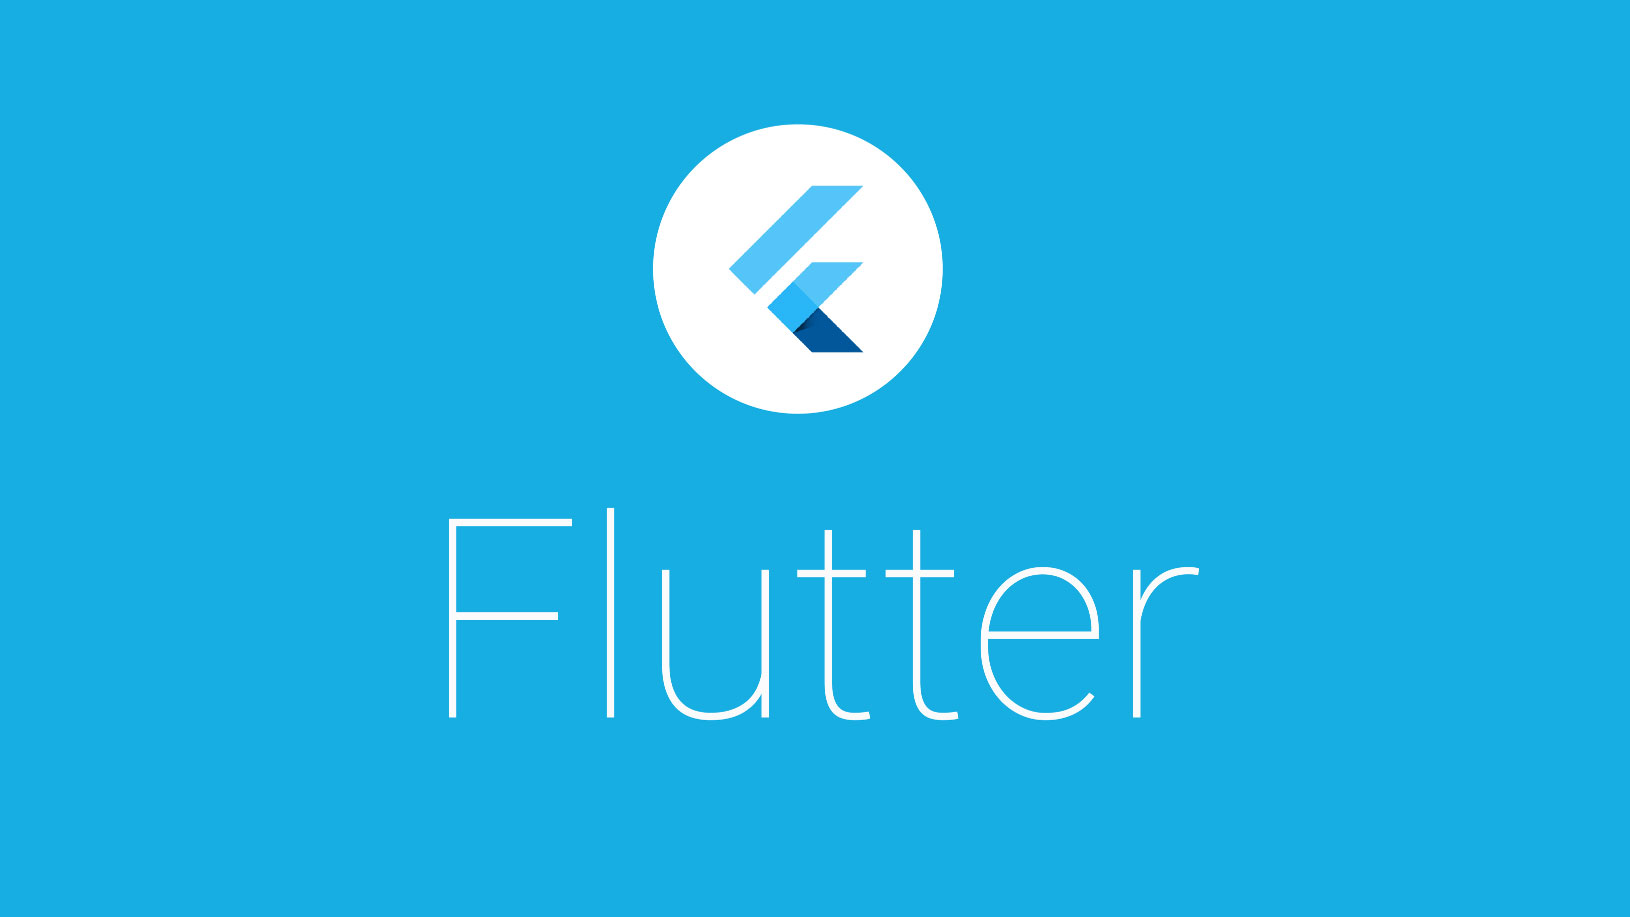 Build cross-platform mobile apps with Google's Flutter